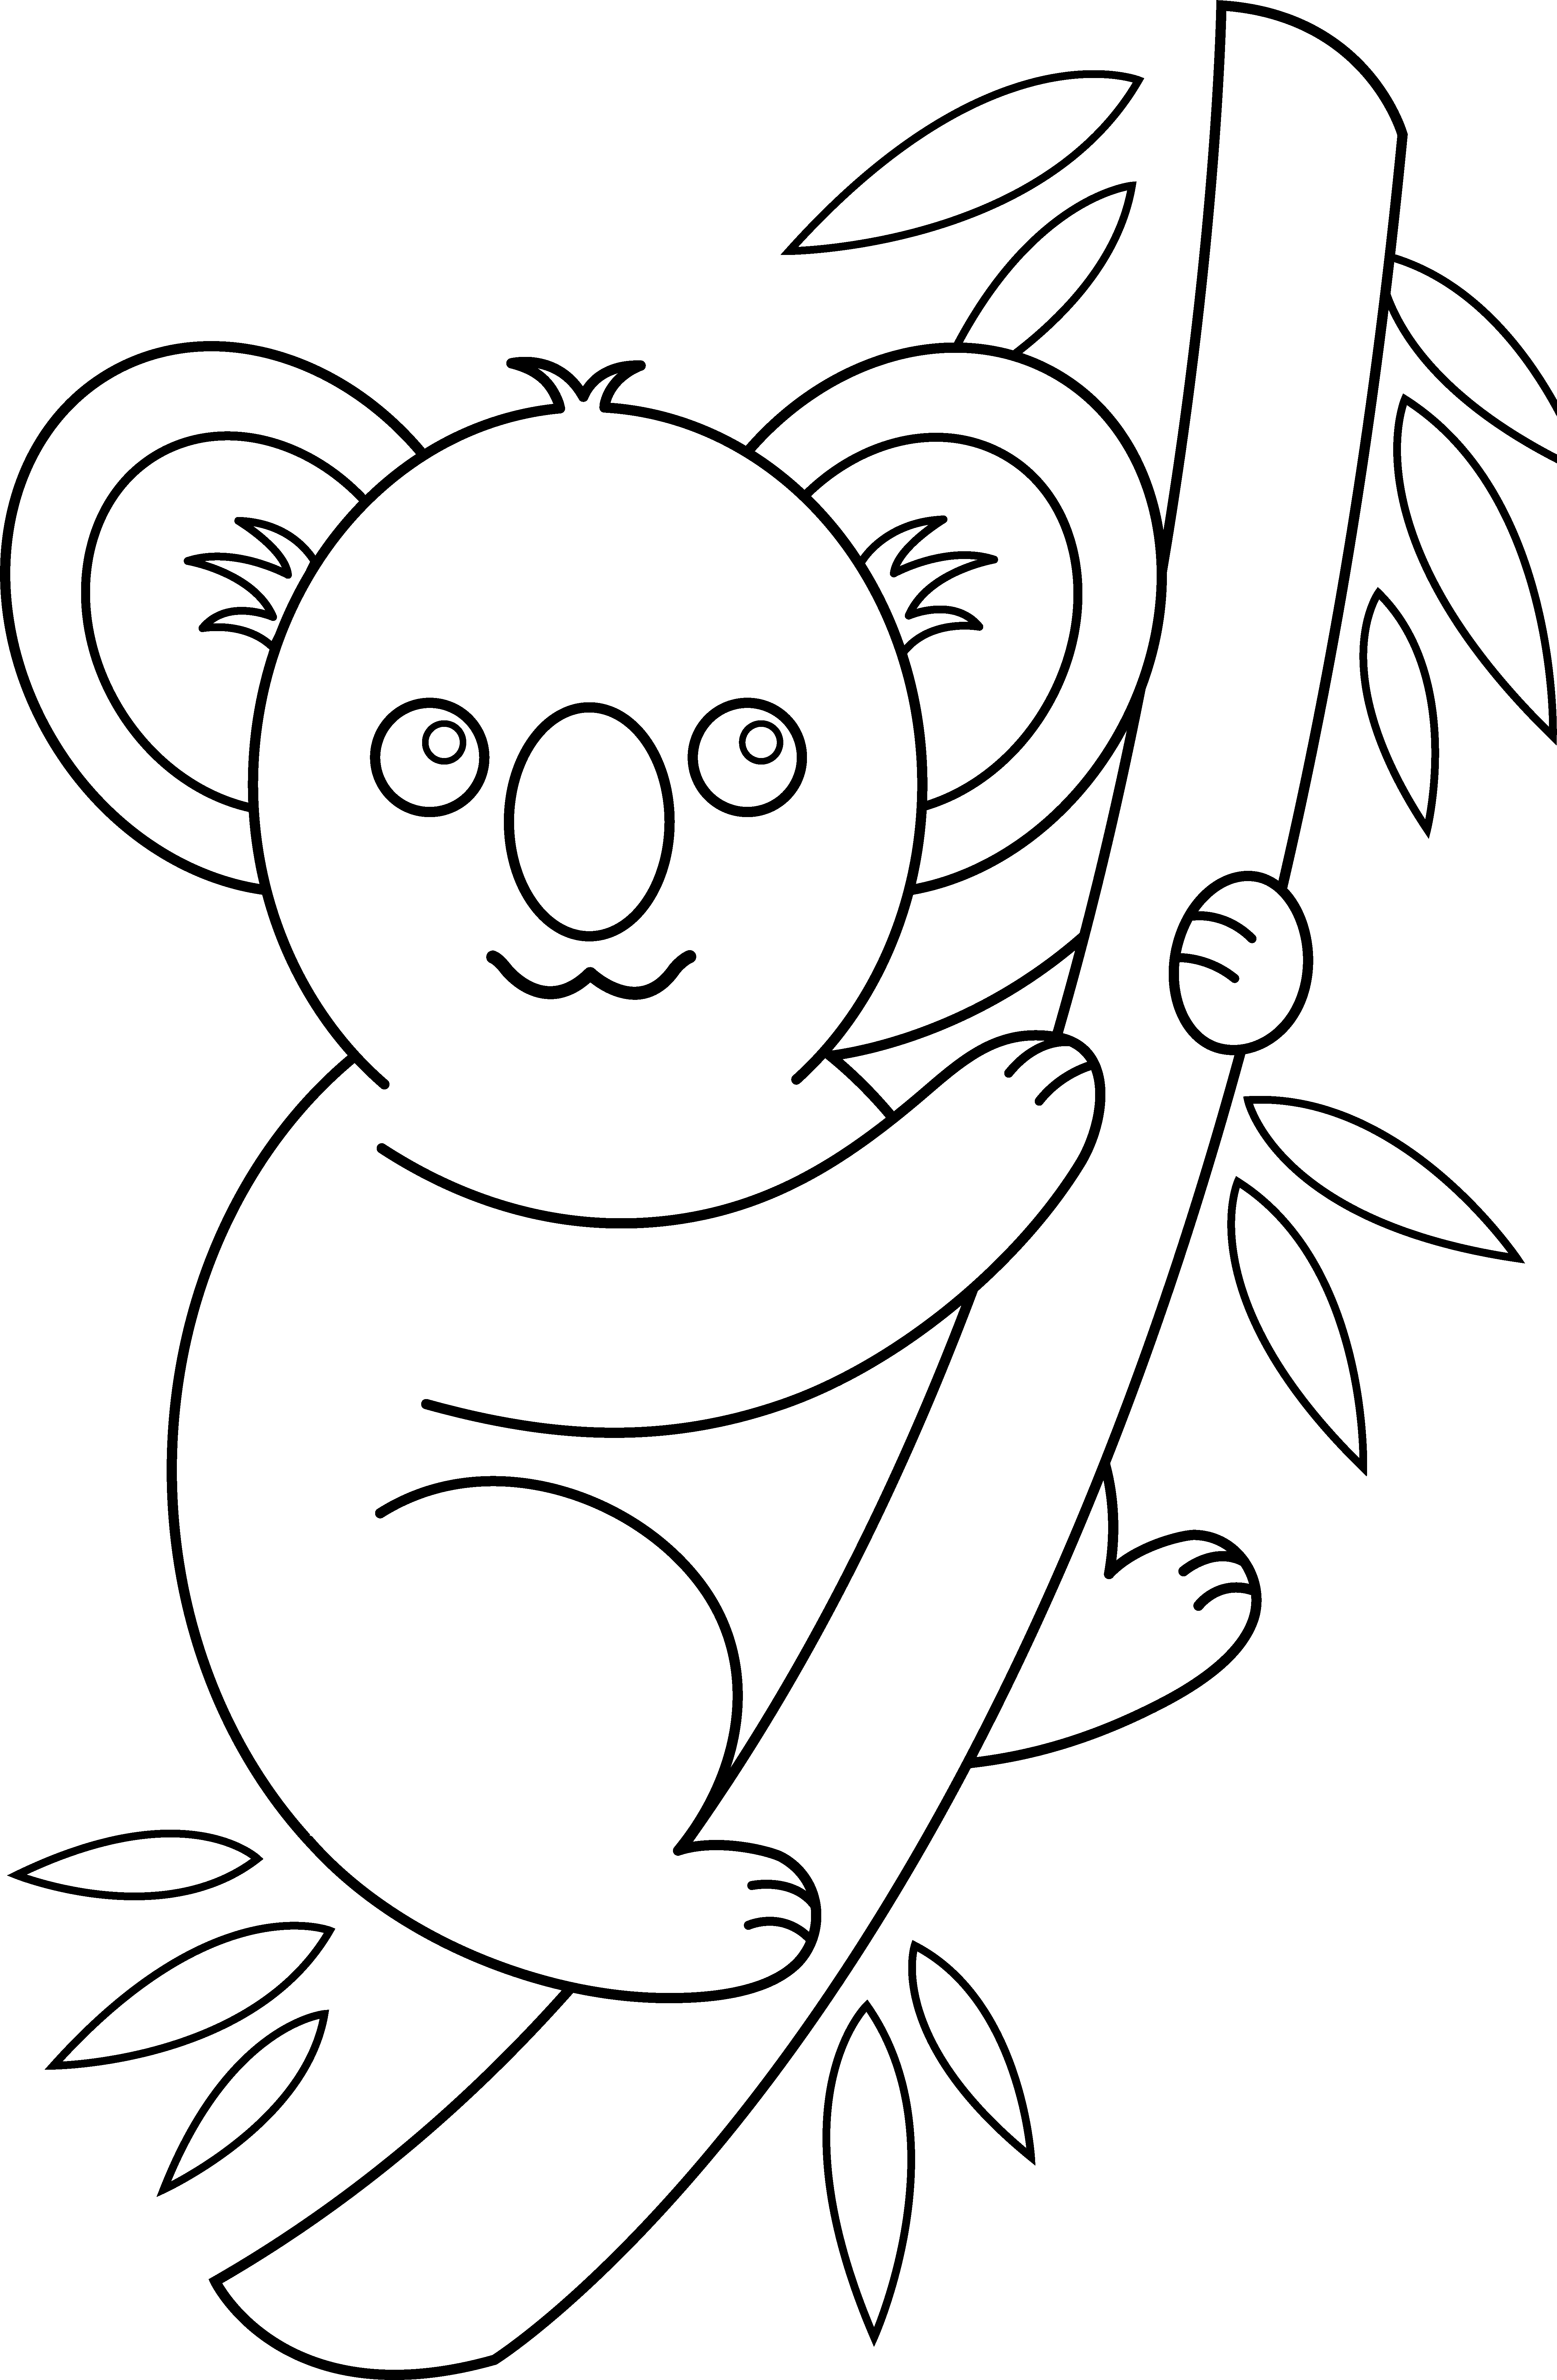 clip art coloring pages koala coloring page free clip art pages clip art coloring